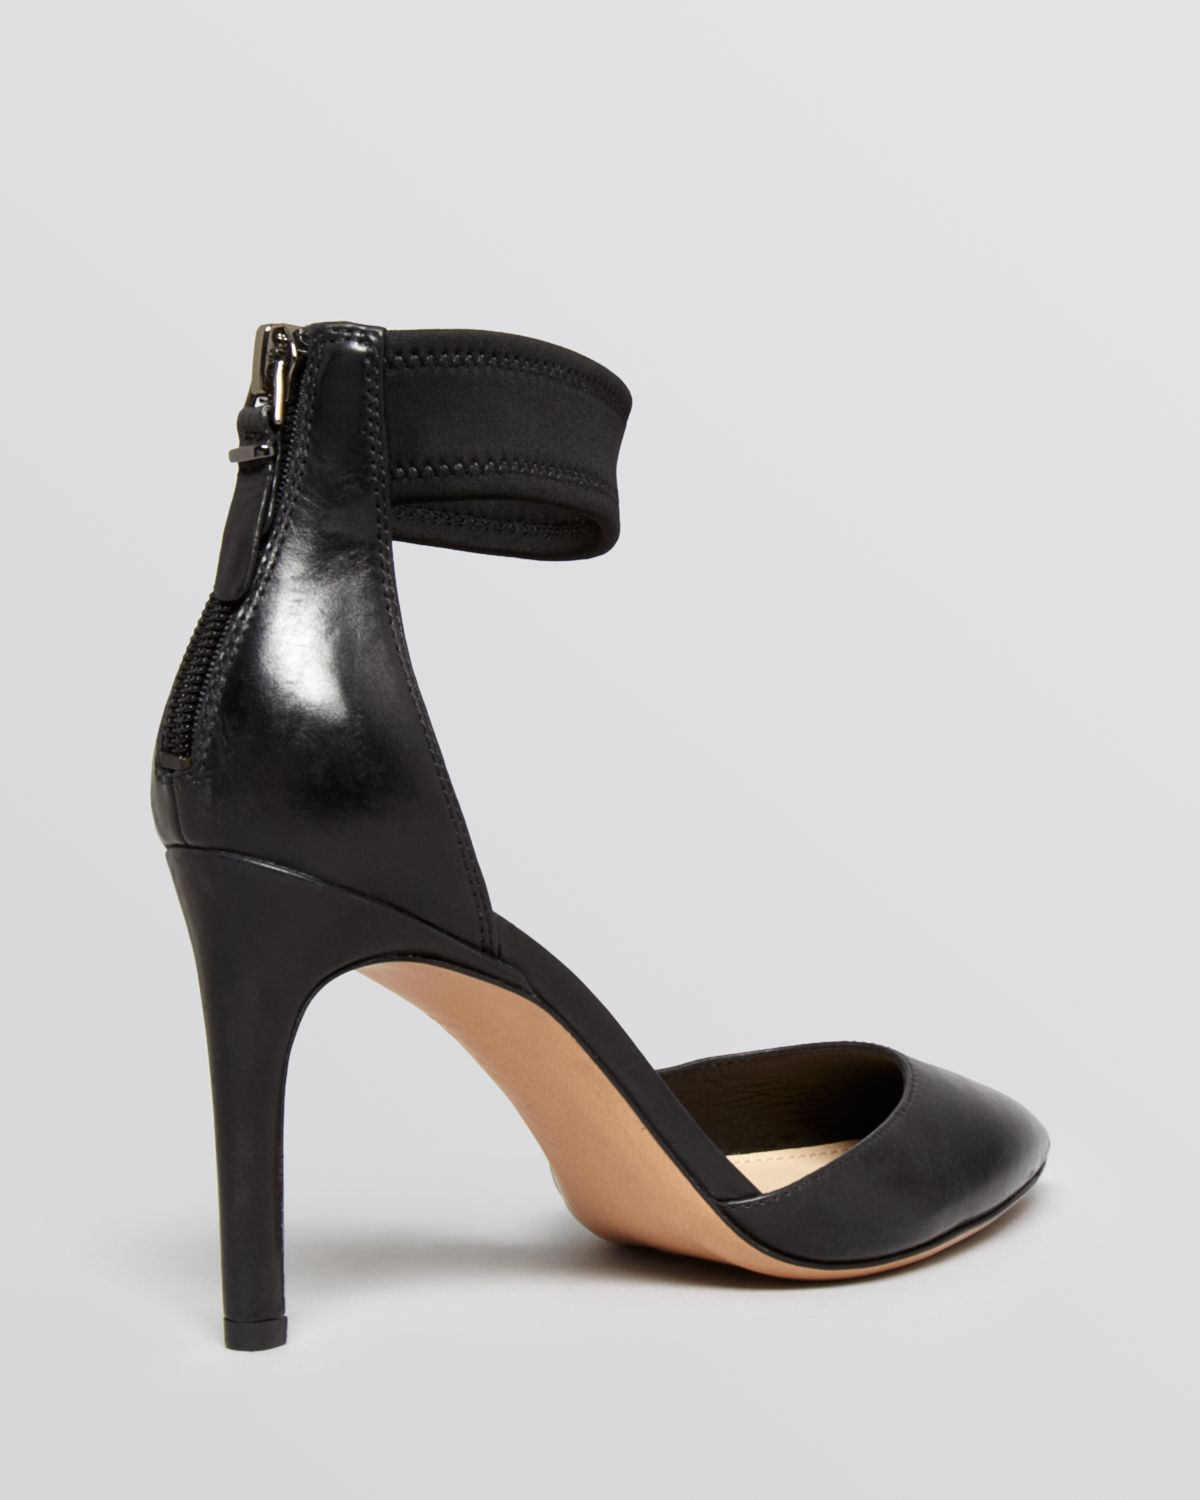 10bf350fa89 Lyst - Via Spiga Pointed Toe Ankle Strap Pumps - Ife High Heel in Black